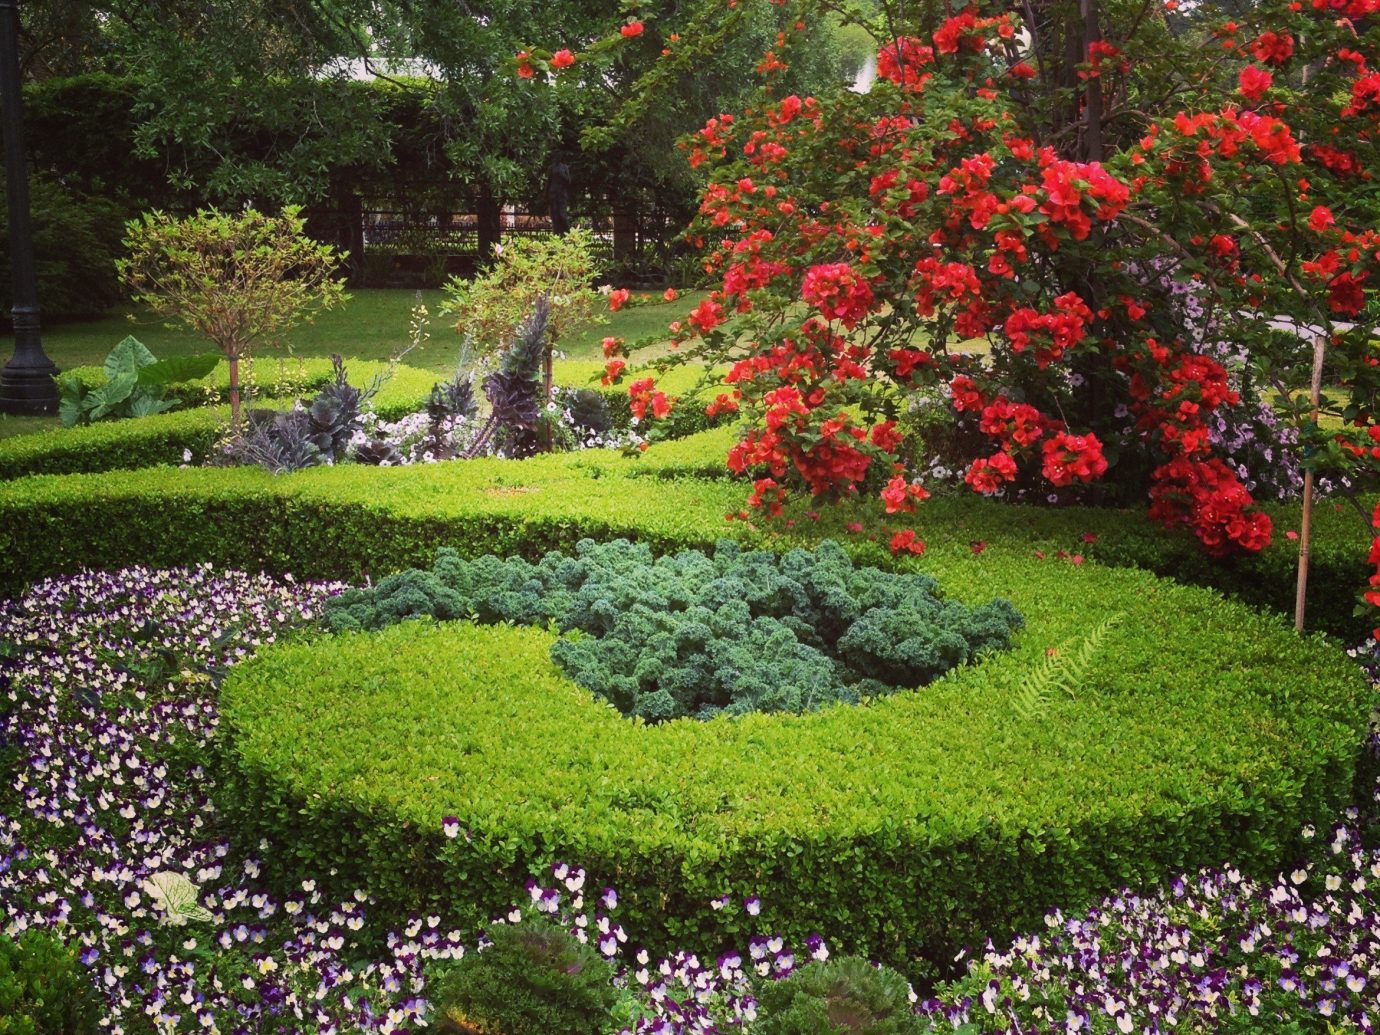 Hotels grass tree flower outdoor Garden plant flora botany lawn green land plant shrub yard woodland botanical garden flowering plant bushes annual plant meadow blossom grassy surrounded stone colorful lush colored